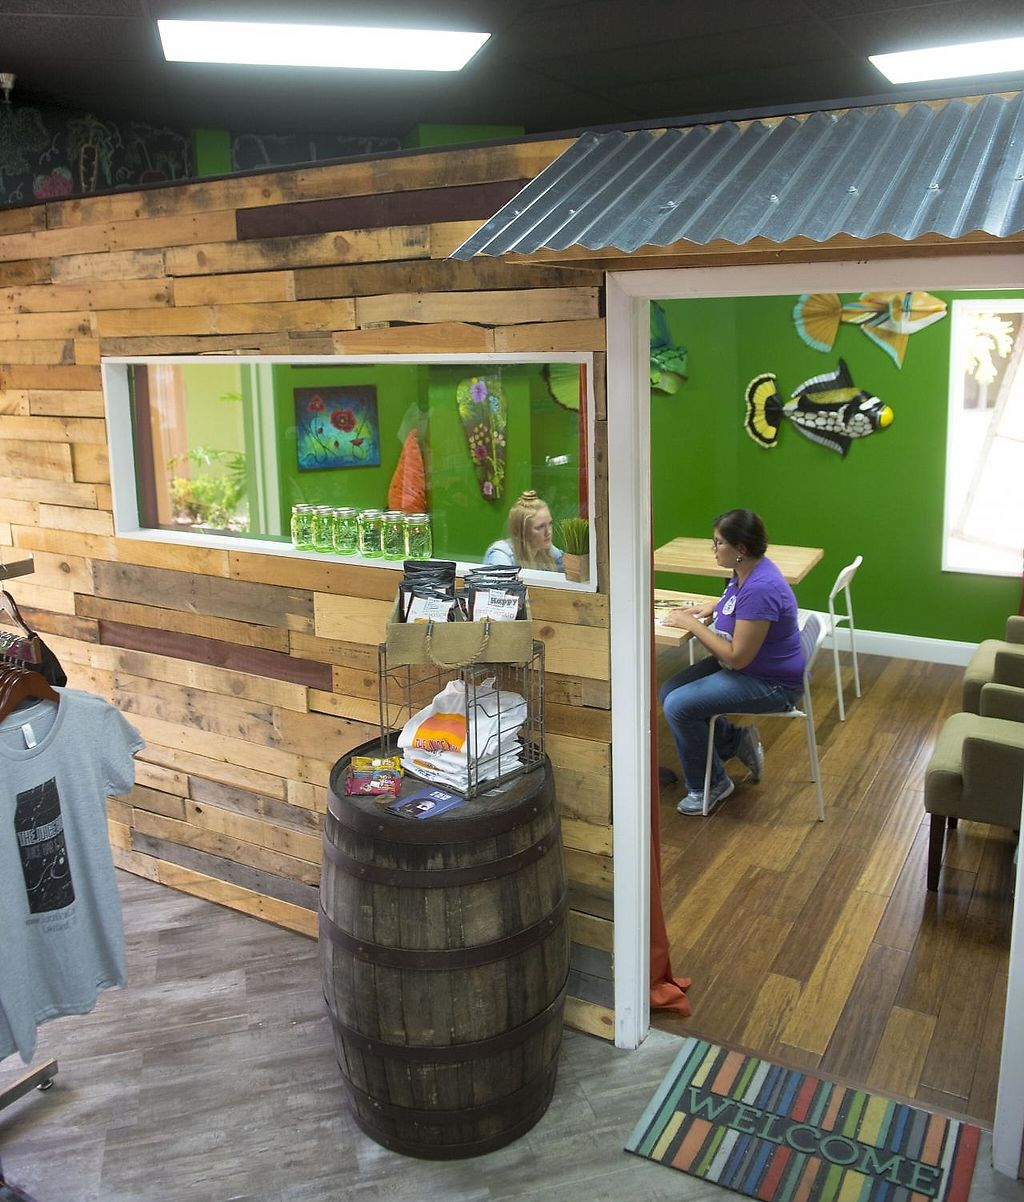 """Photo of The Juice Box  by <a href=""""/members/profile/meganlewman"""">meganlewman</a> <br/>The Green Room - a seating area and showcase for local artists <br/> June 17, 2015  - <a href='/contact/abuse/image/56086/196477'>Report</a>"""